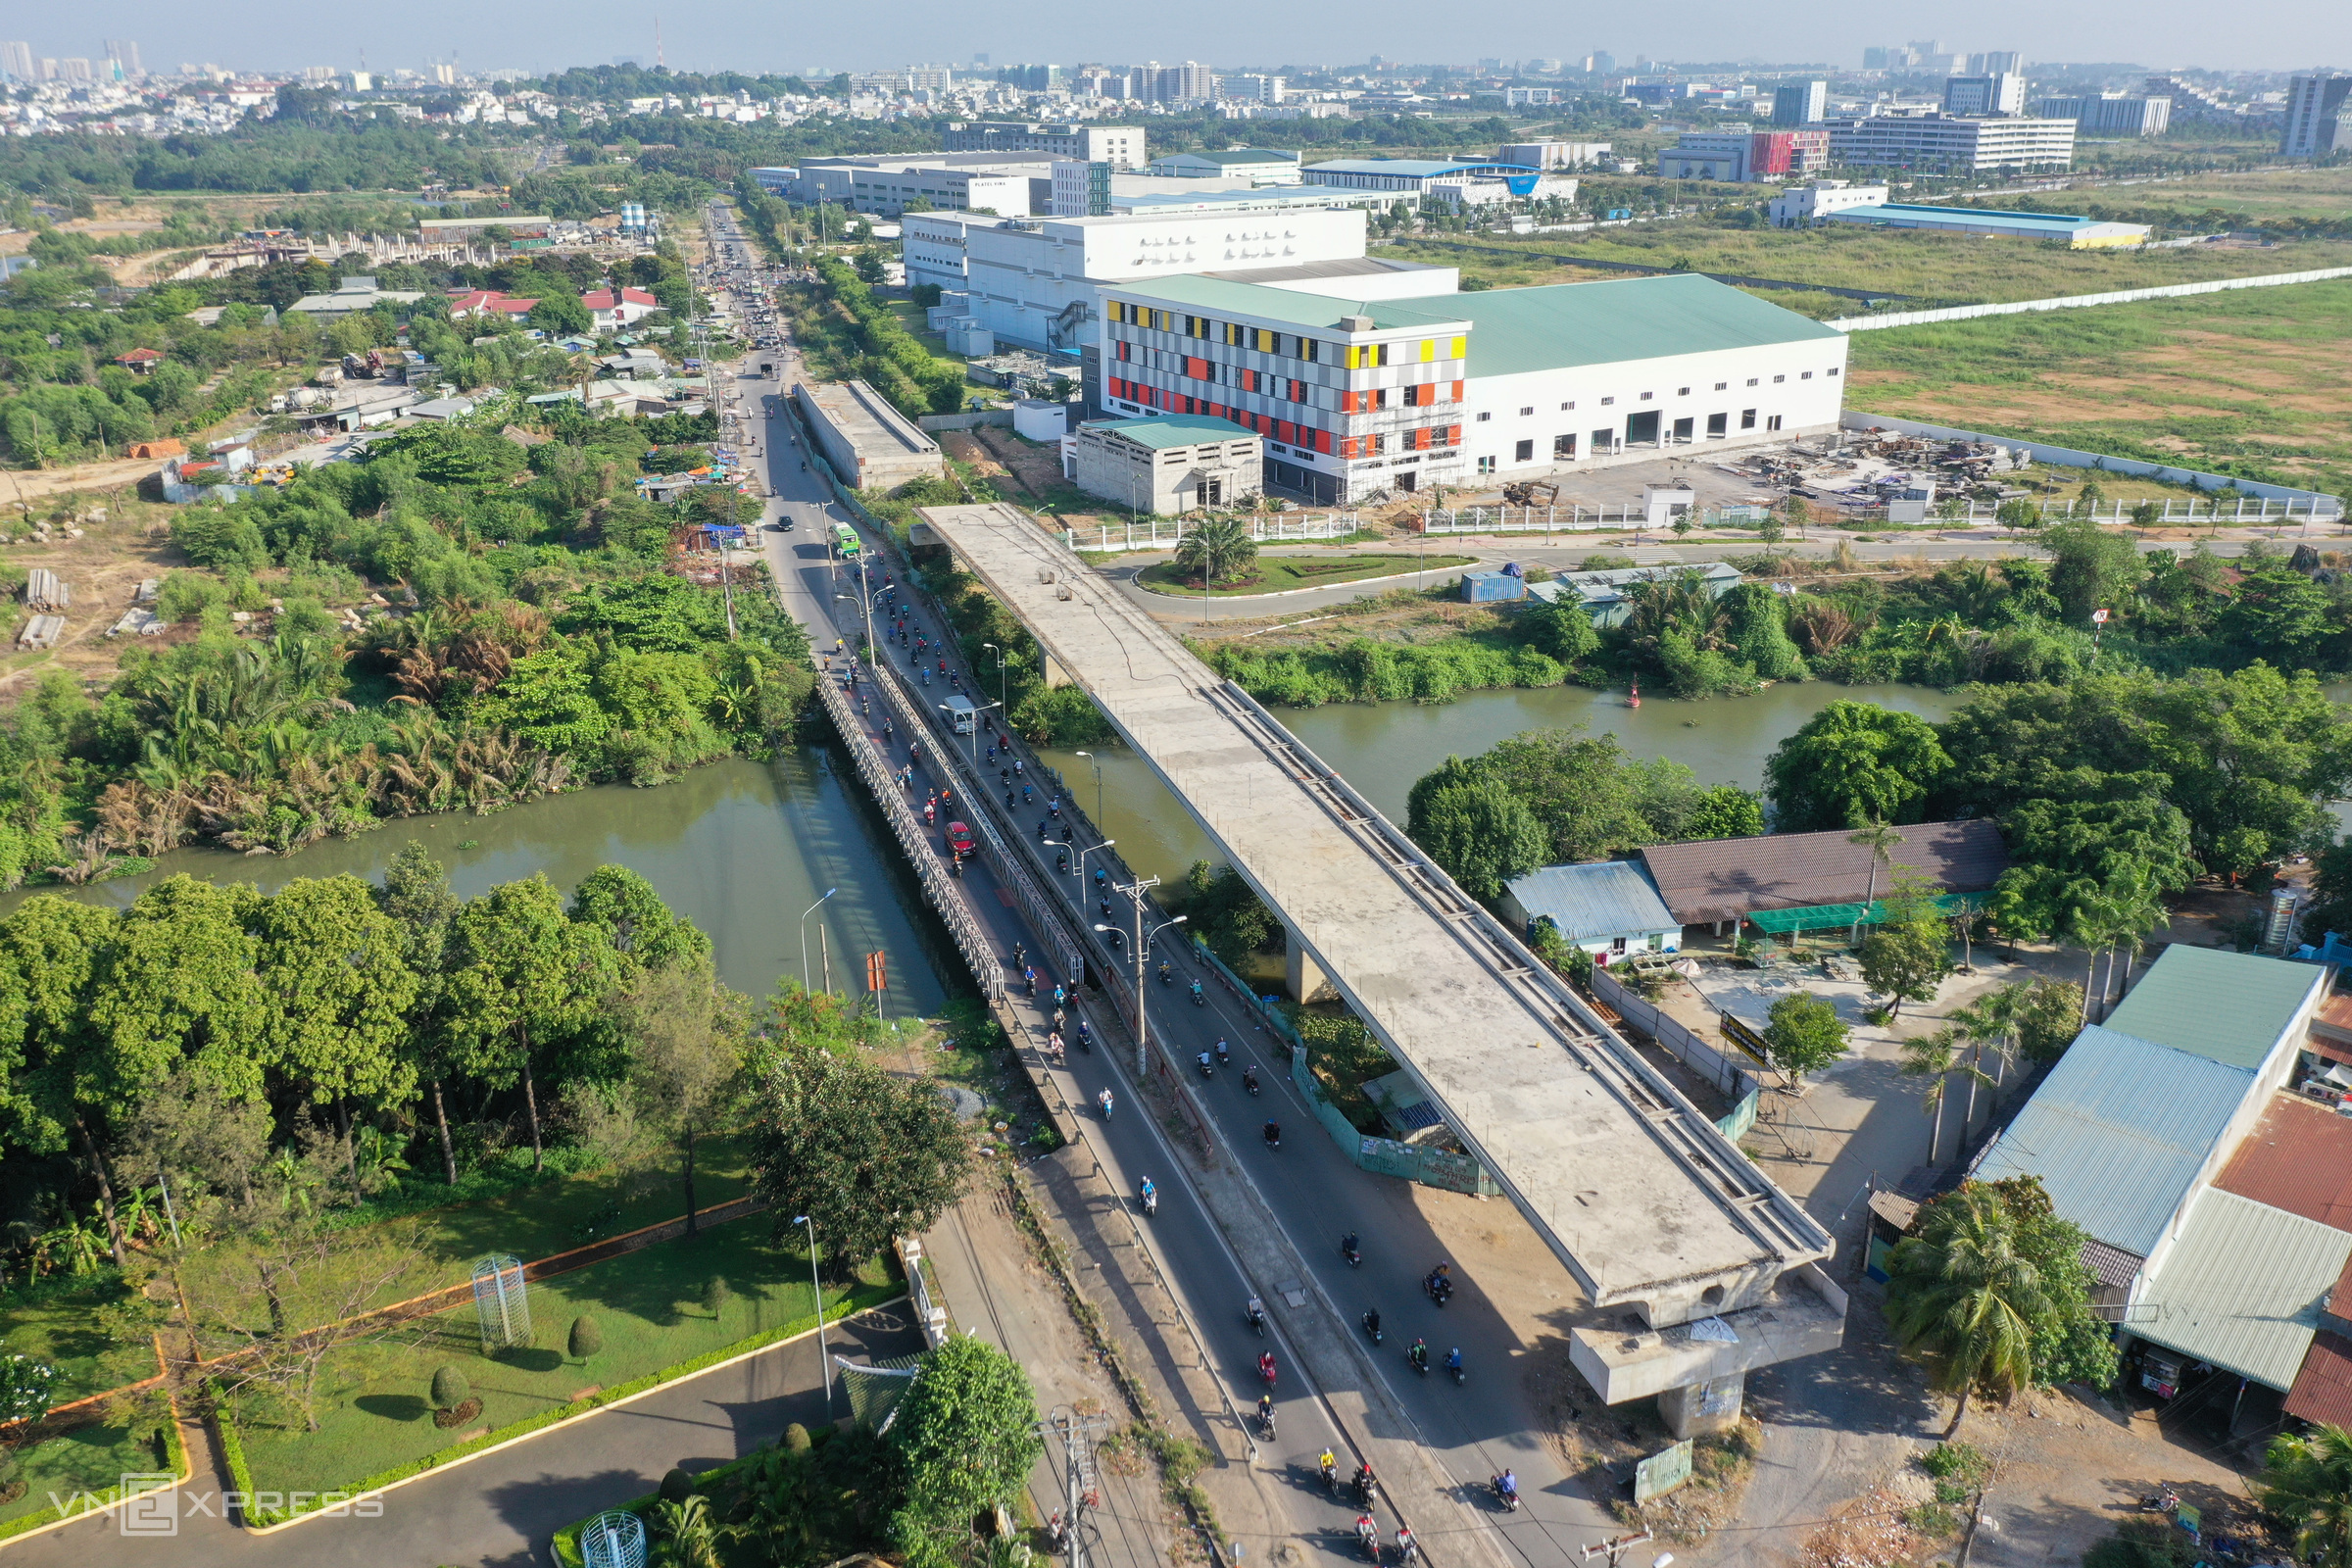 Six kilometers from Nam Ly, Tang Long Bridge on La Xuan Oai Street has been built since 2017 to span 680 meters across the Trau Trau Canal to replace an old, downgraded one nearby.